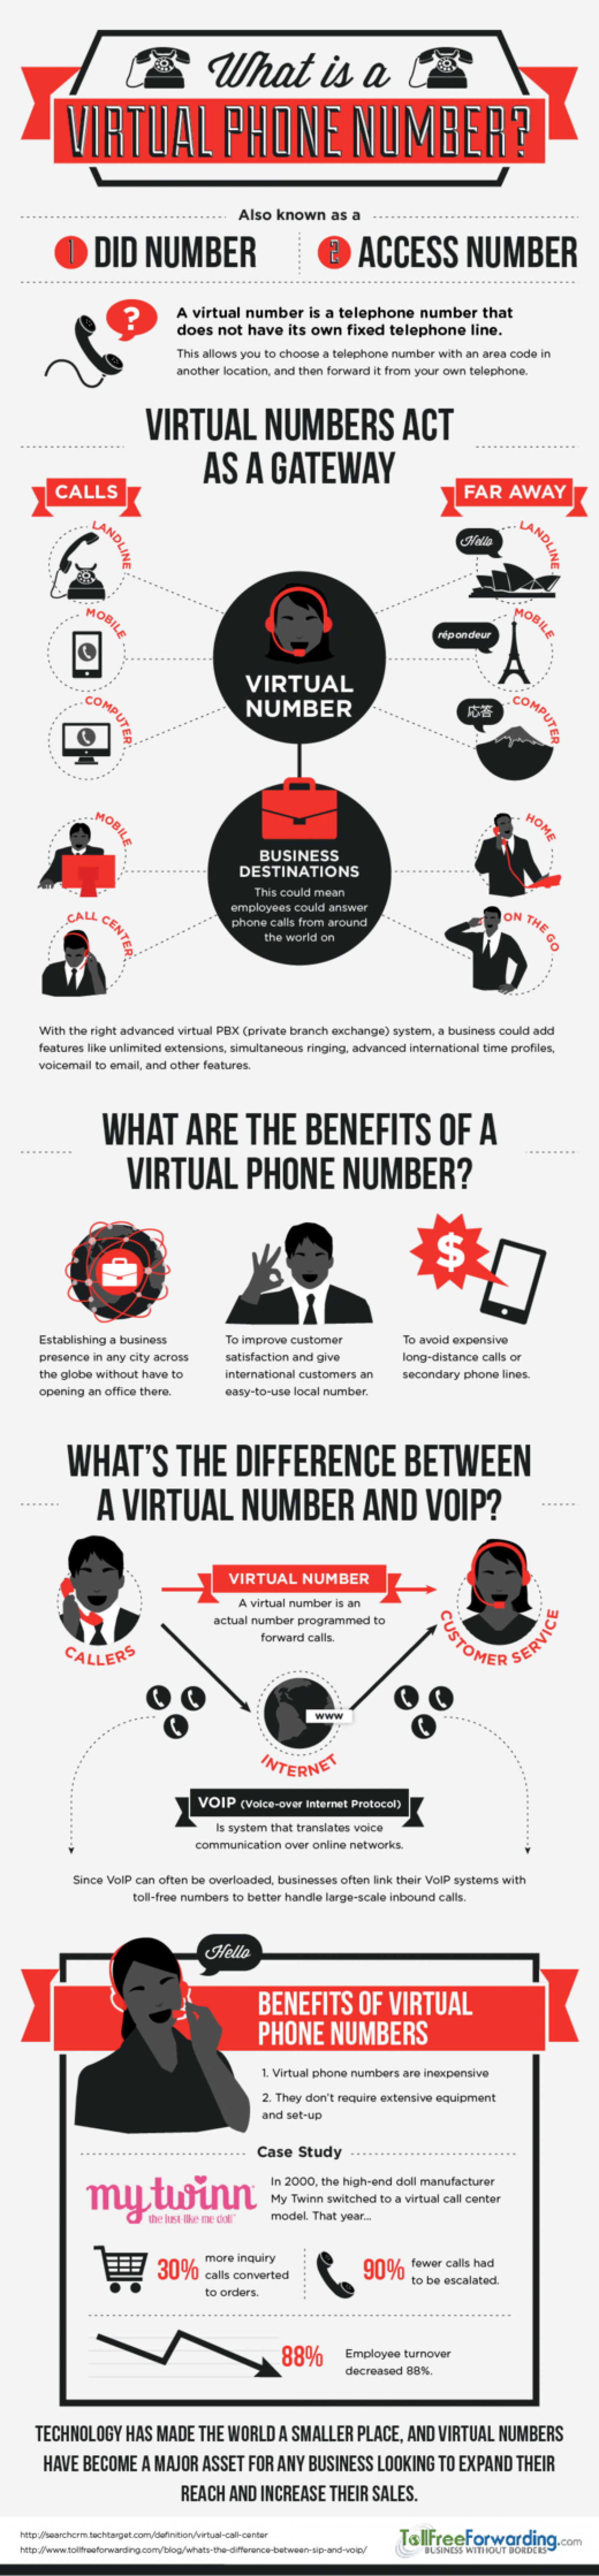 What Is a Virtual Phone Number? Infographic